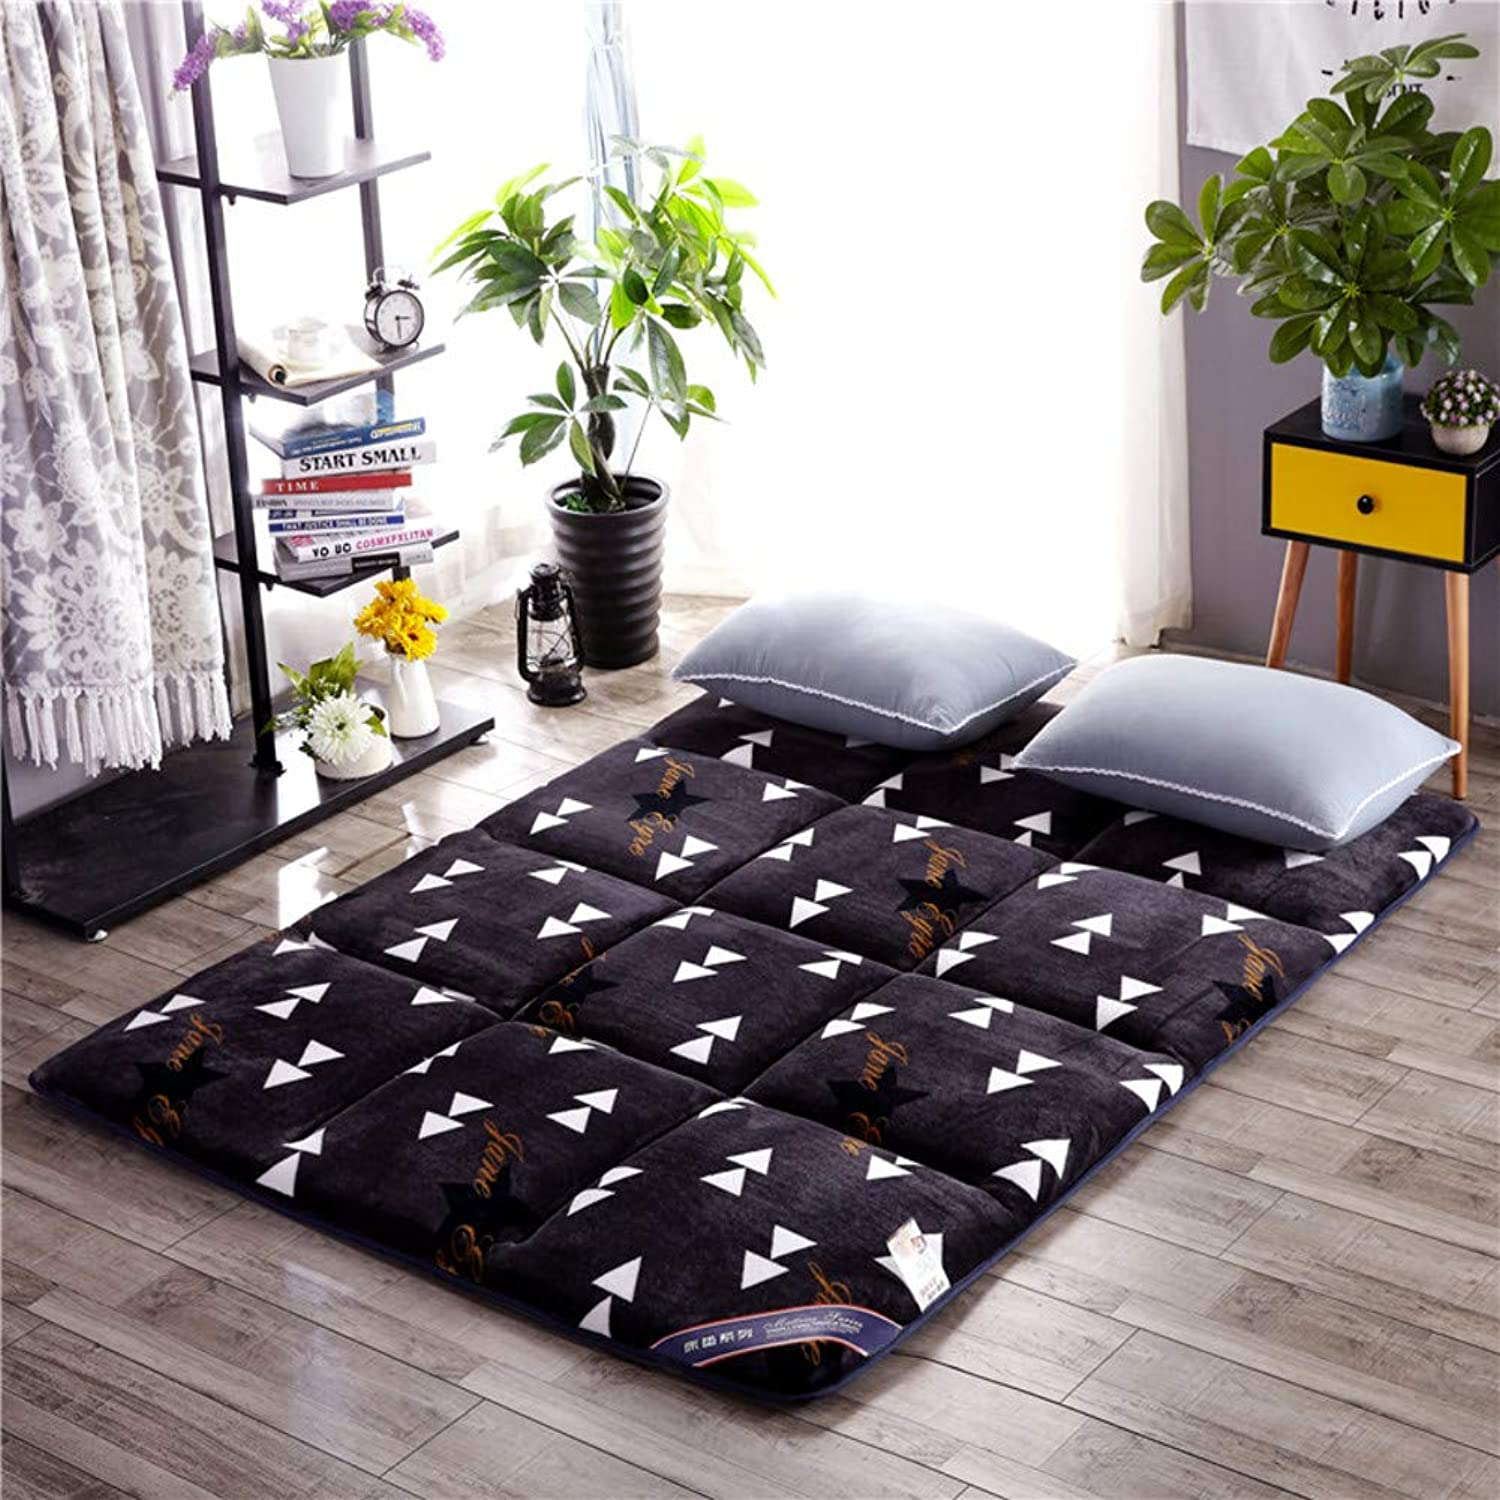 Flannel Japanese Floor Futon Mattress, Breathable Sleeping Pad, Foldable Matt Mat, Futon Sleeping Pad Bed Roll, Roll Up Mattress Topper Mat-a 90x200cm(35x79inch)